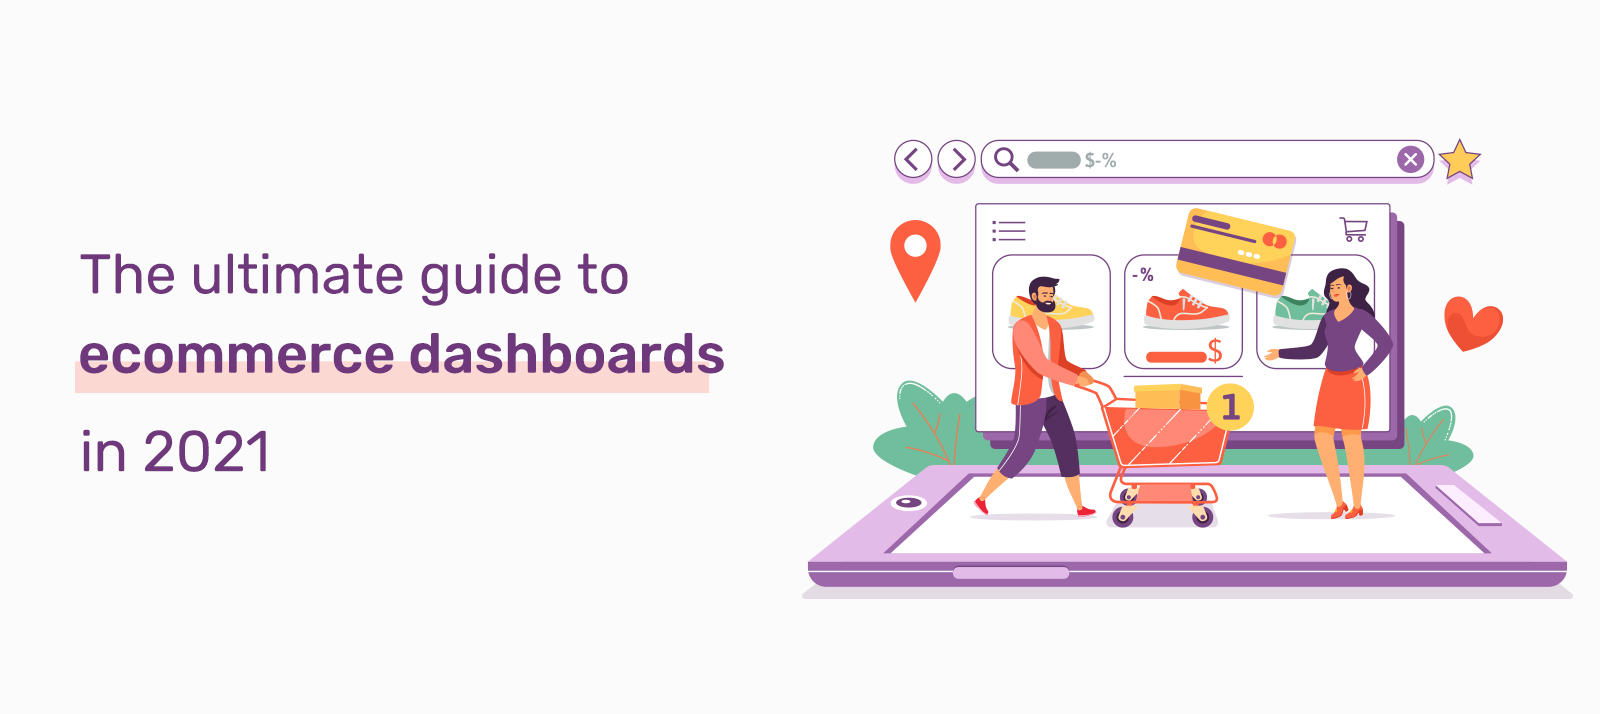 The Ultimate Guide to eCommerce dashboards in 2021